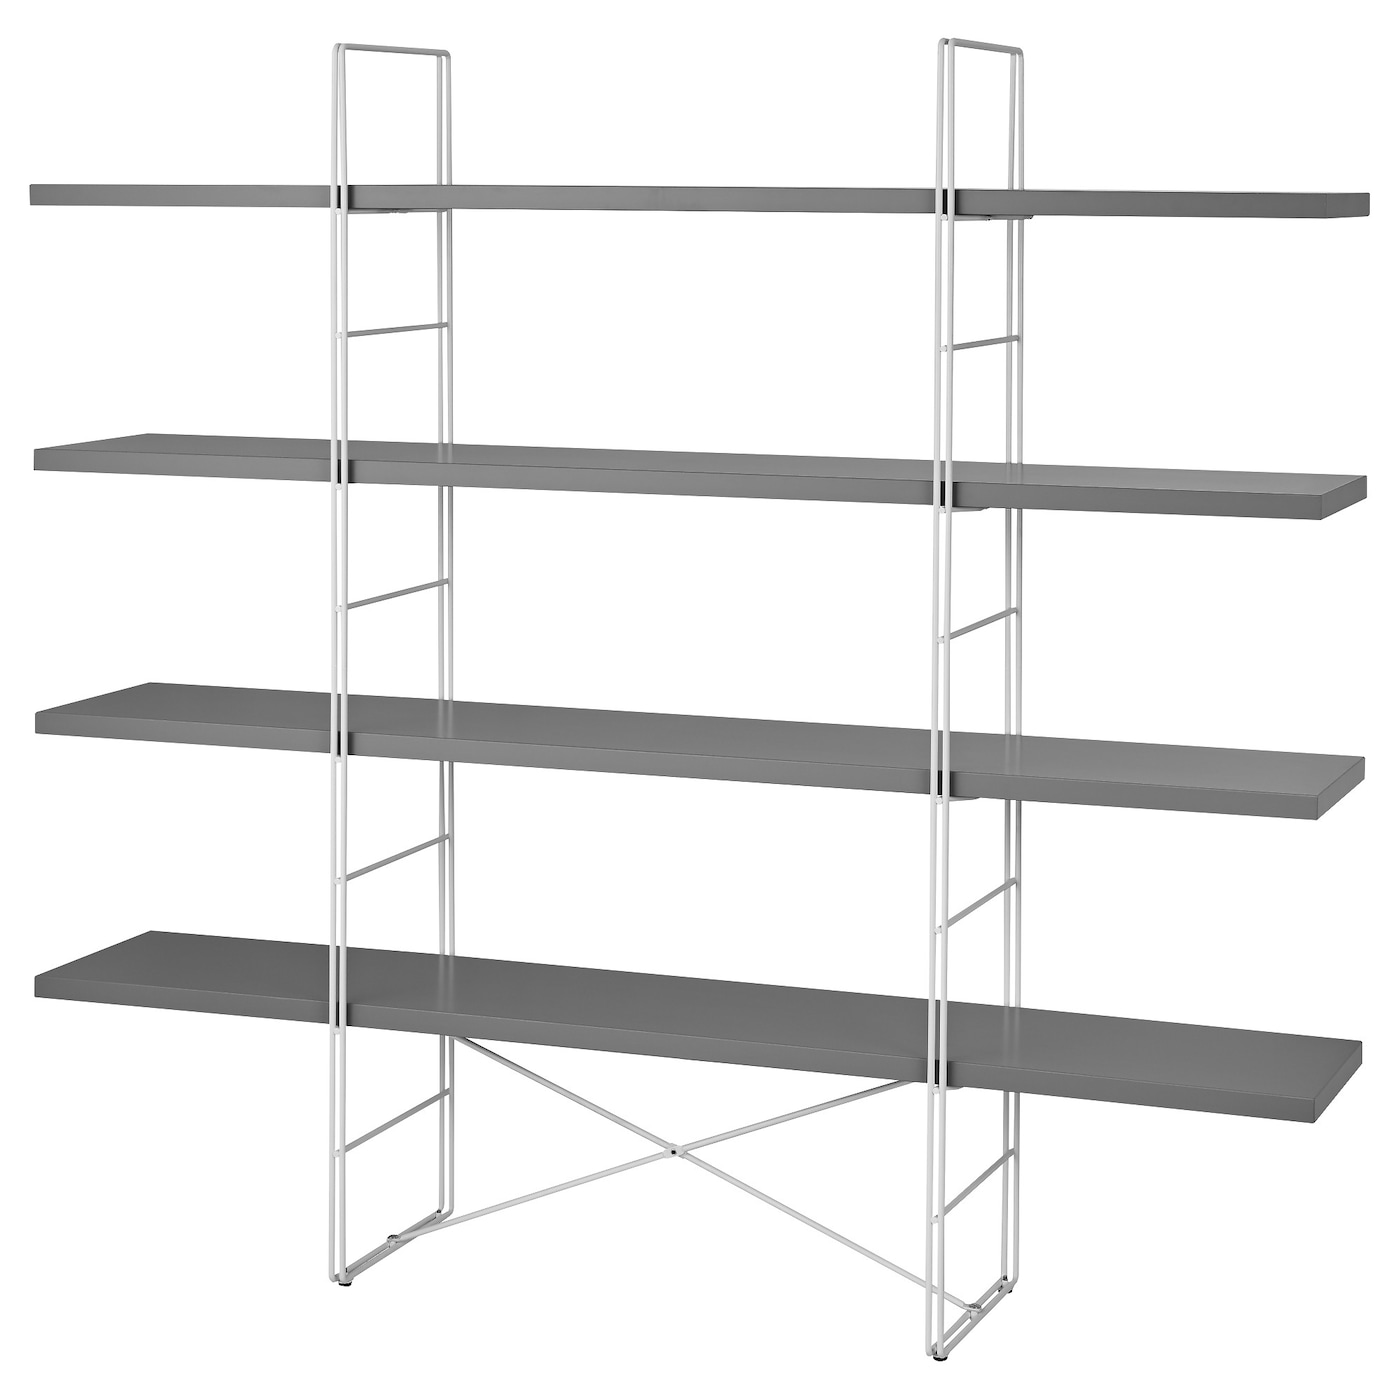 shelving units shelving systems ikea rh ikea com ikea metal shelving uk